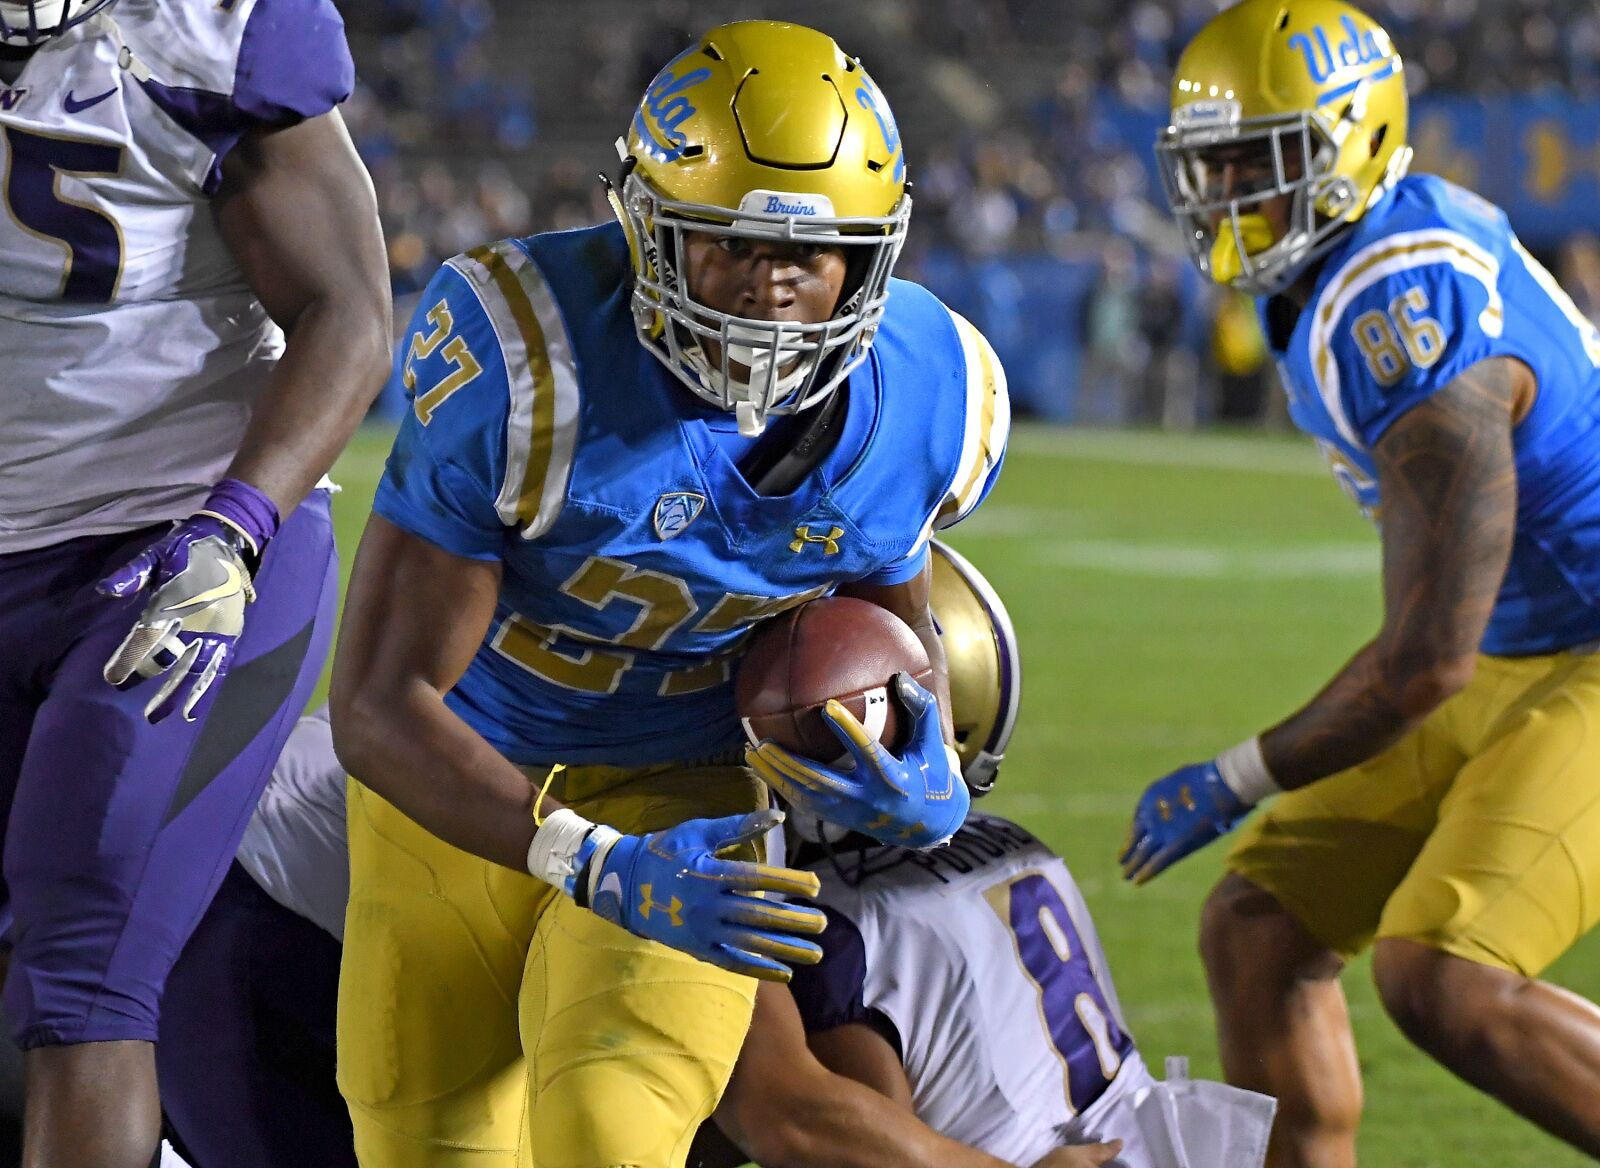 UCLA Spring Game 2019 live stream: How to watch online